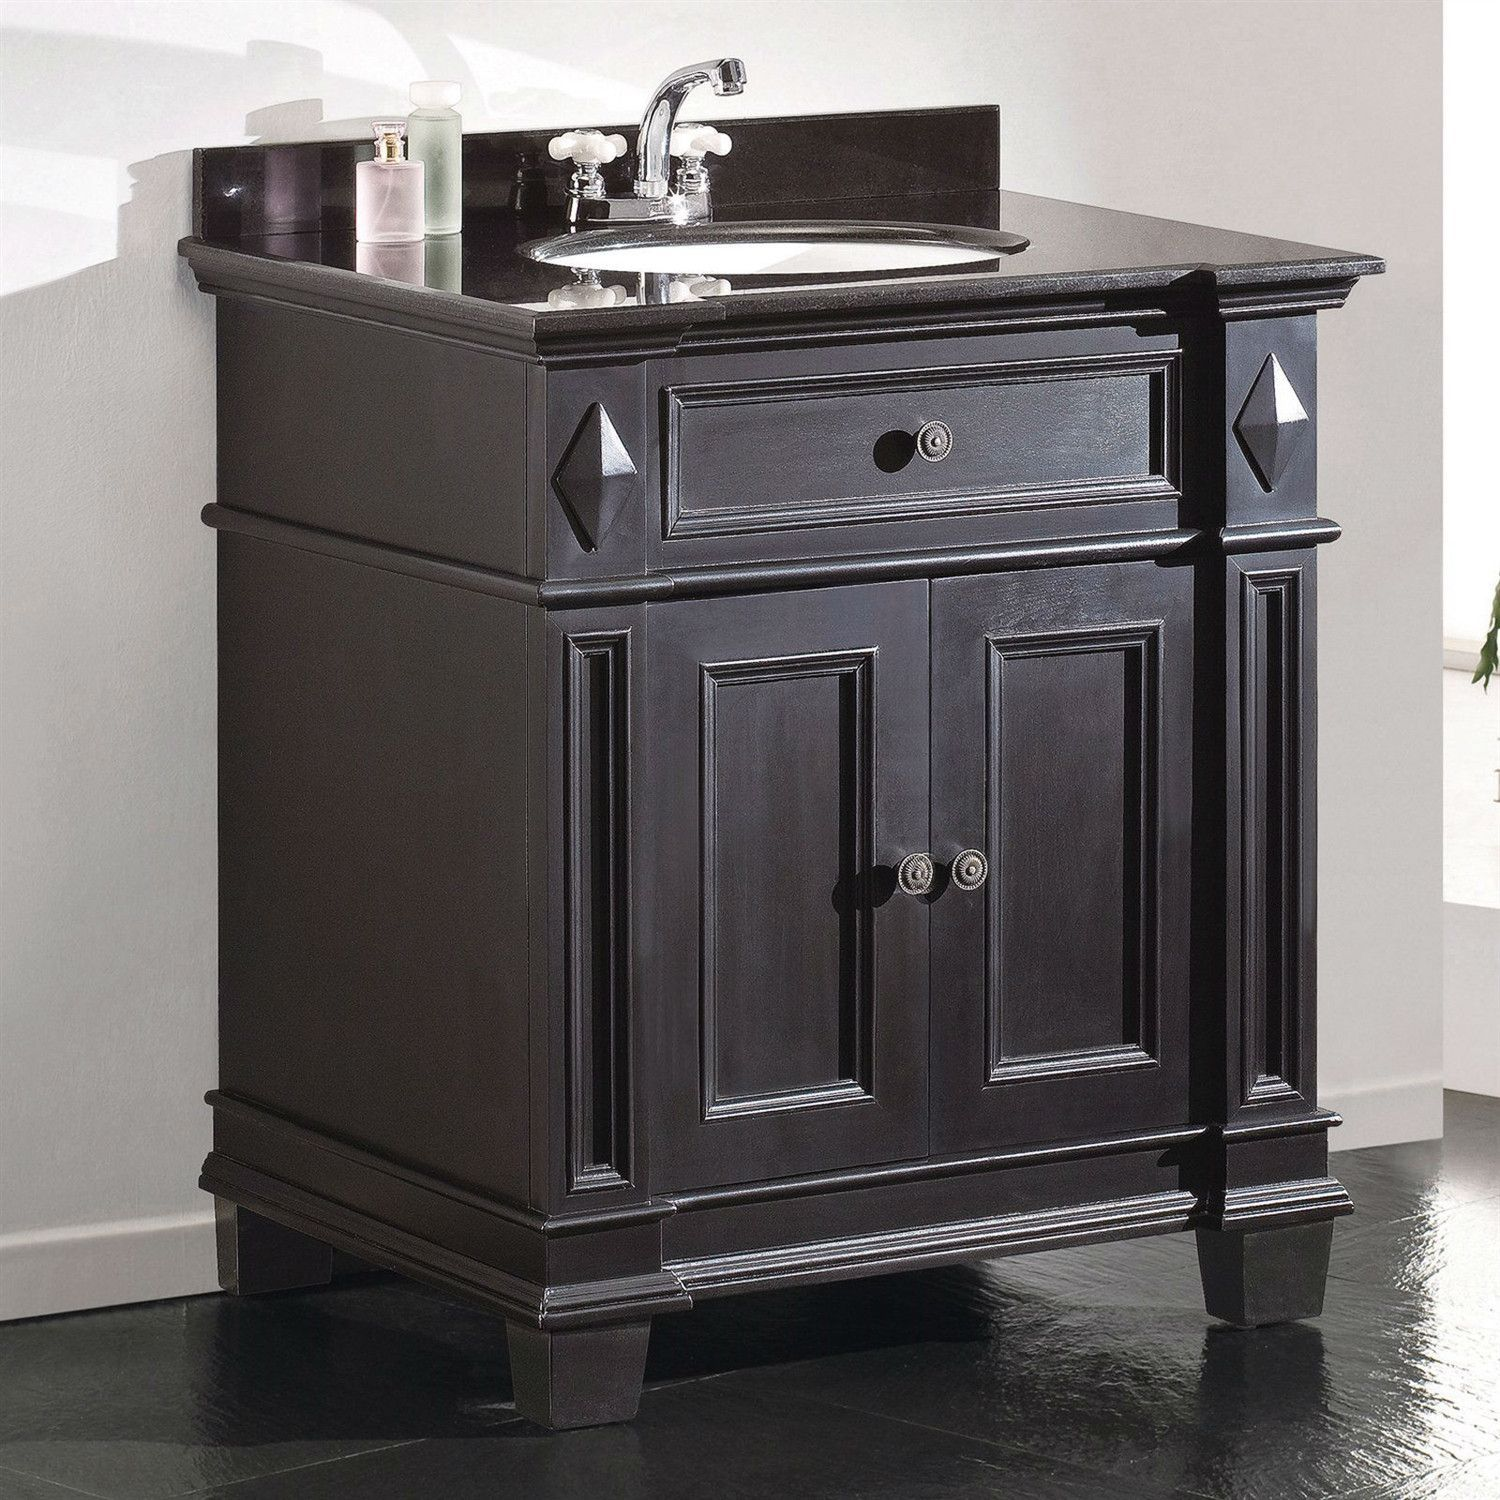 Best Single Sink Bathroom Vanity With Cabinet Black Granite 640 x 480